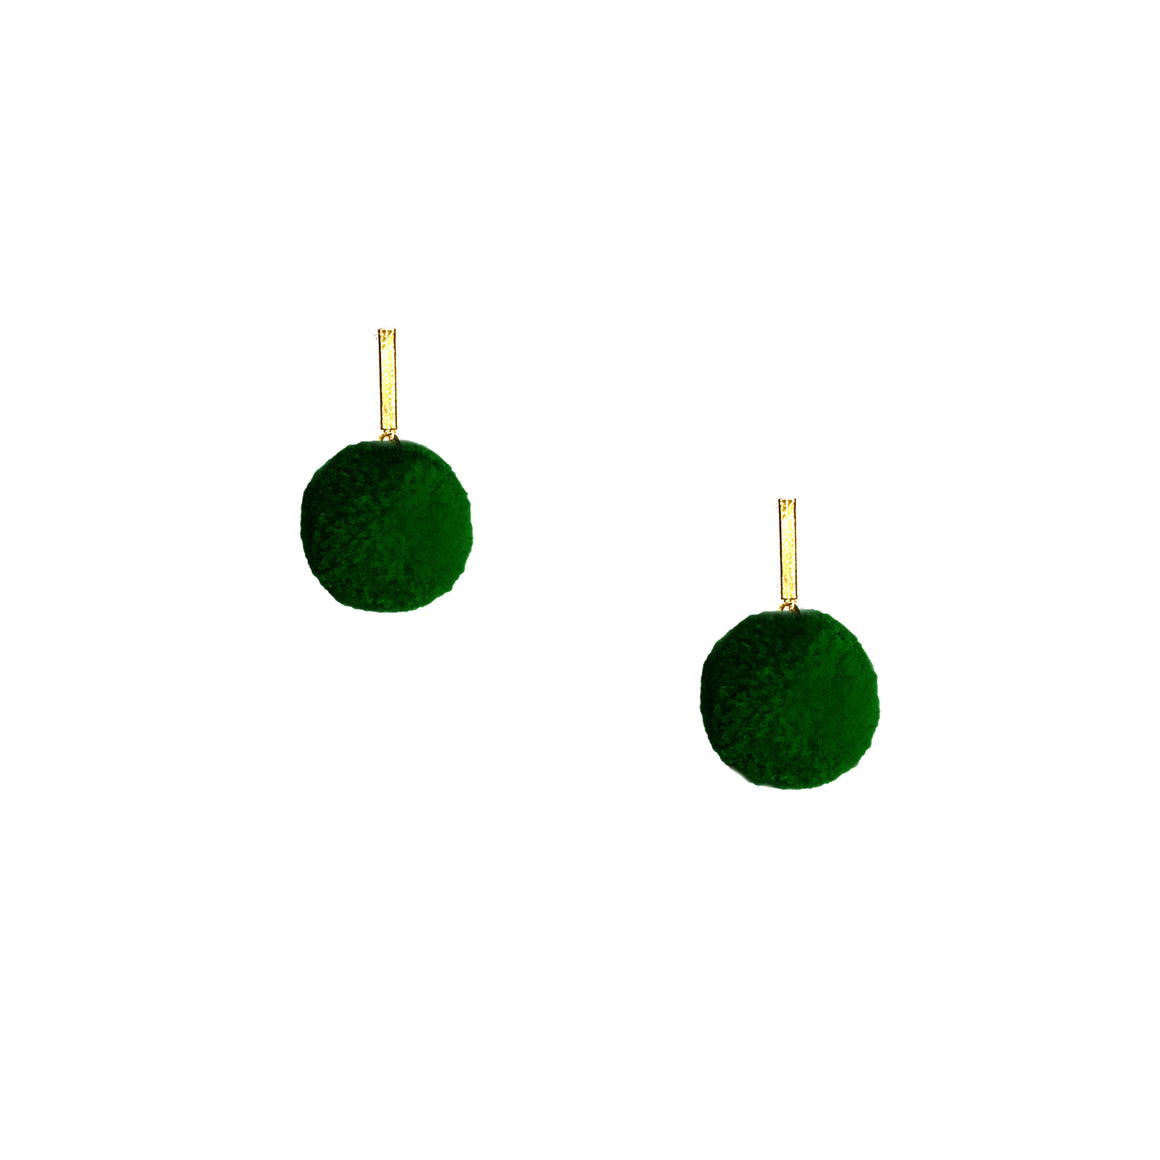 "Green 3/8"" Velvet Pom Pom Stud Earrings, earring, Tuleste, Tuleste"